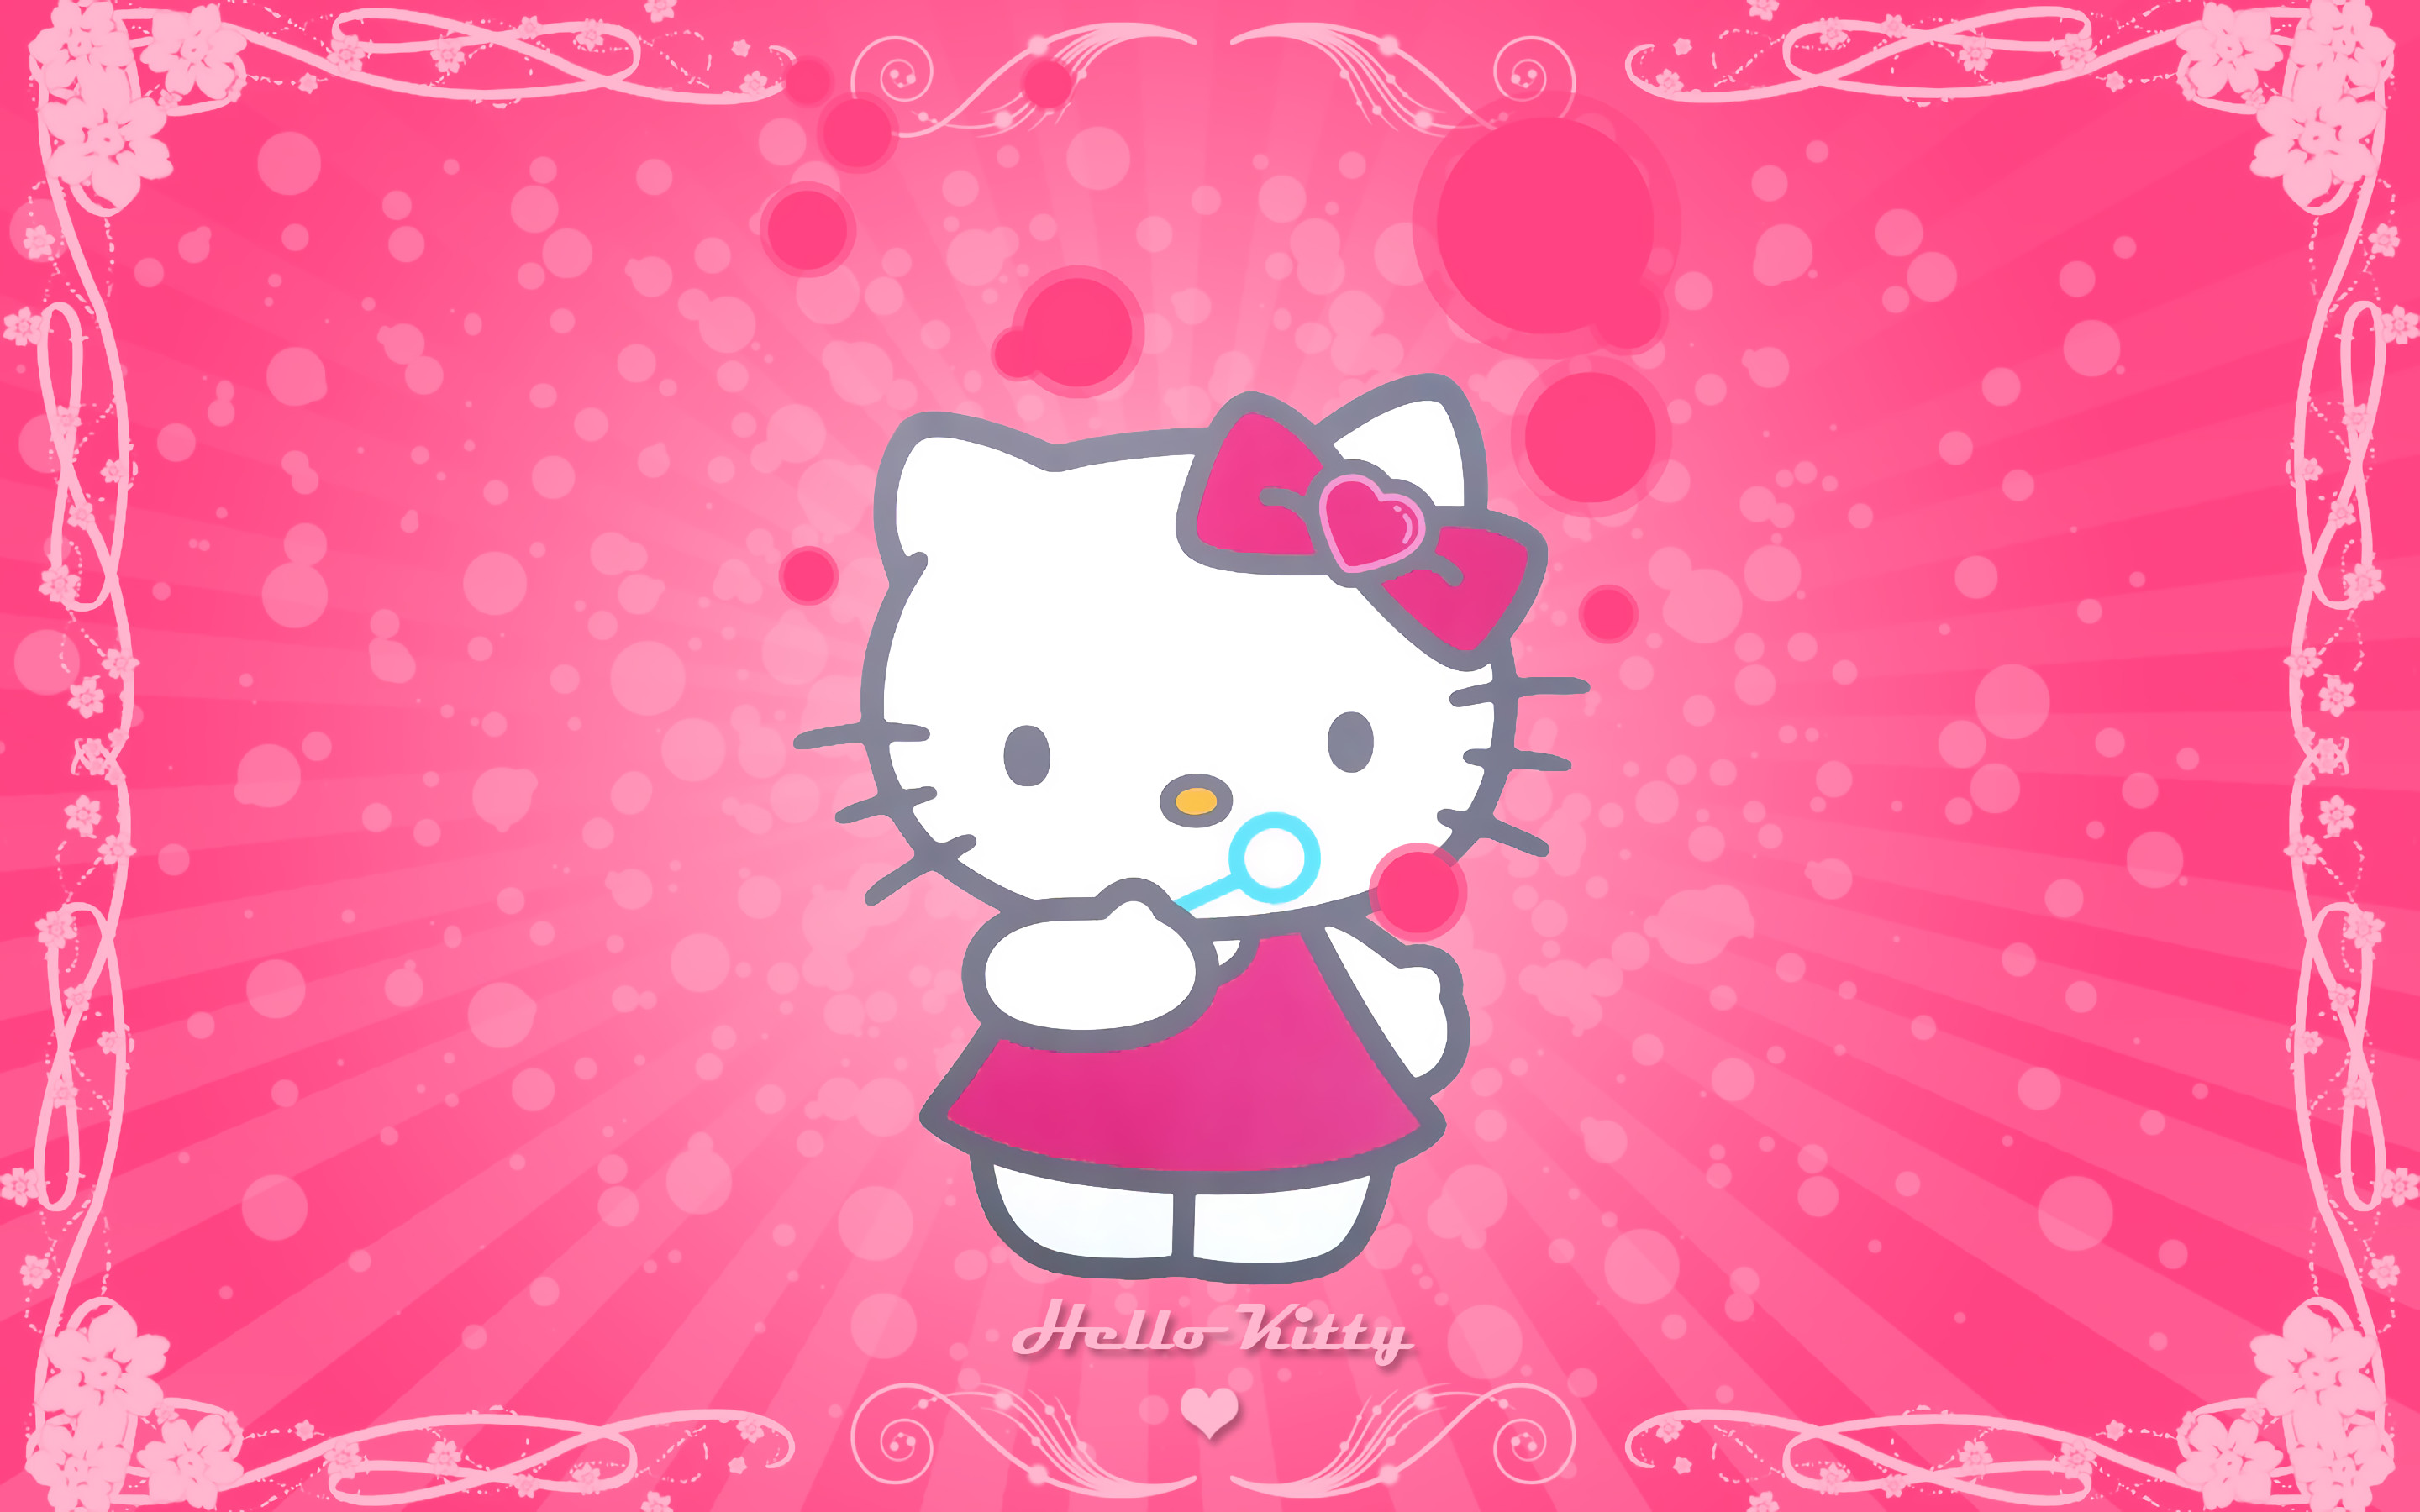 Hello Kitty Hd Wallpapers 74 Background Pictures